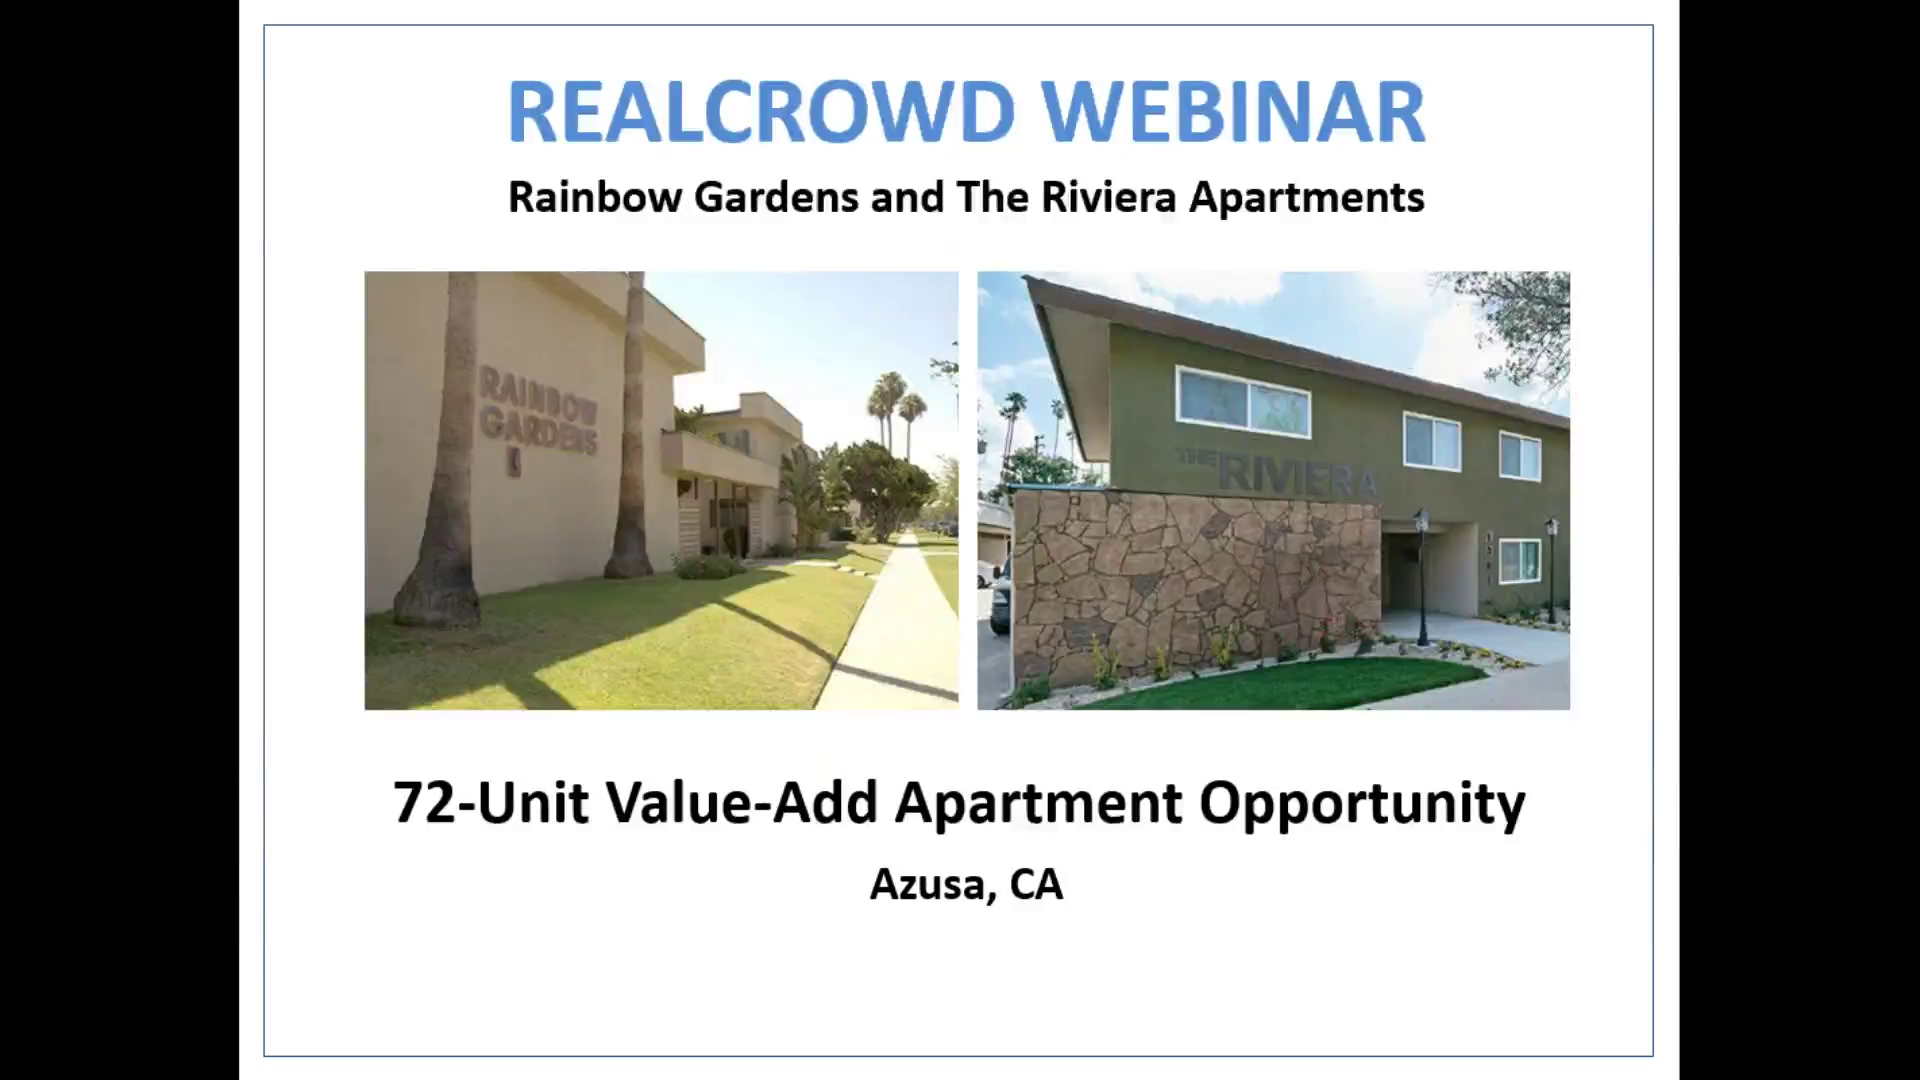 Investment Video - The Riviera and Rainbow Gardens Apartments